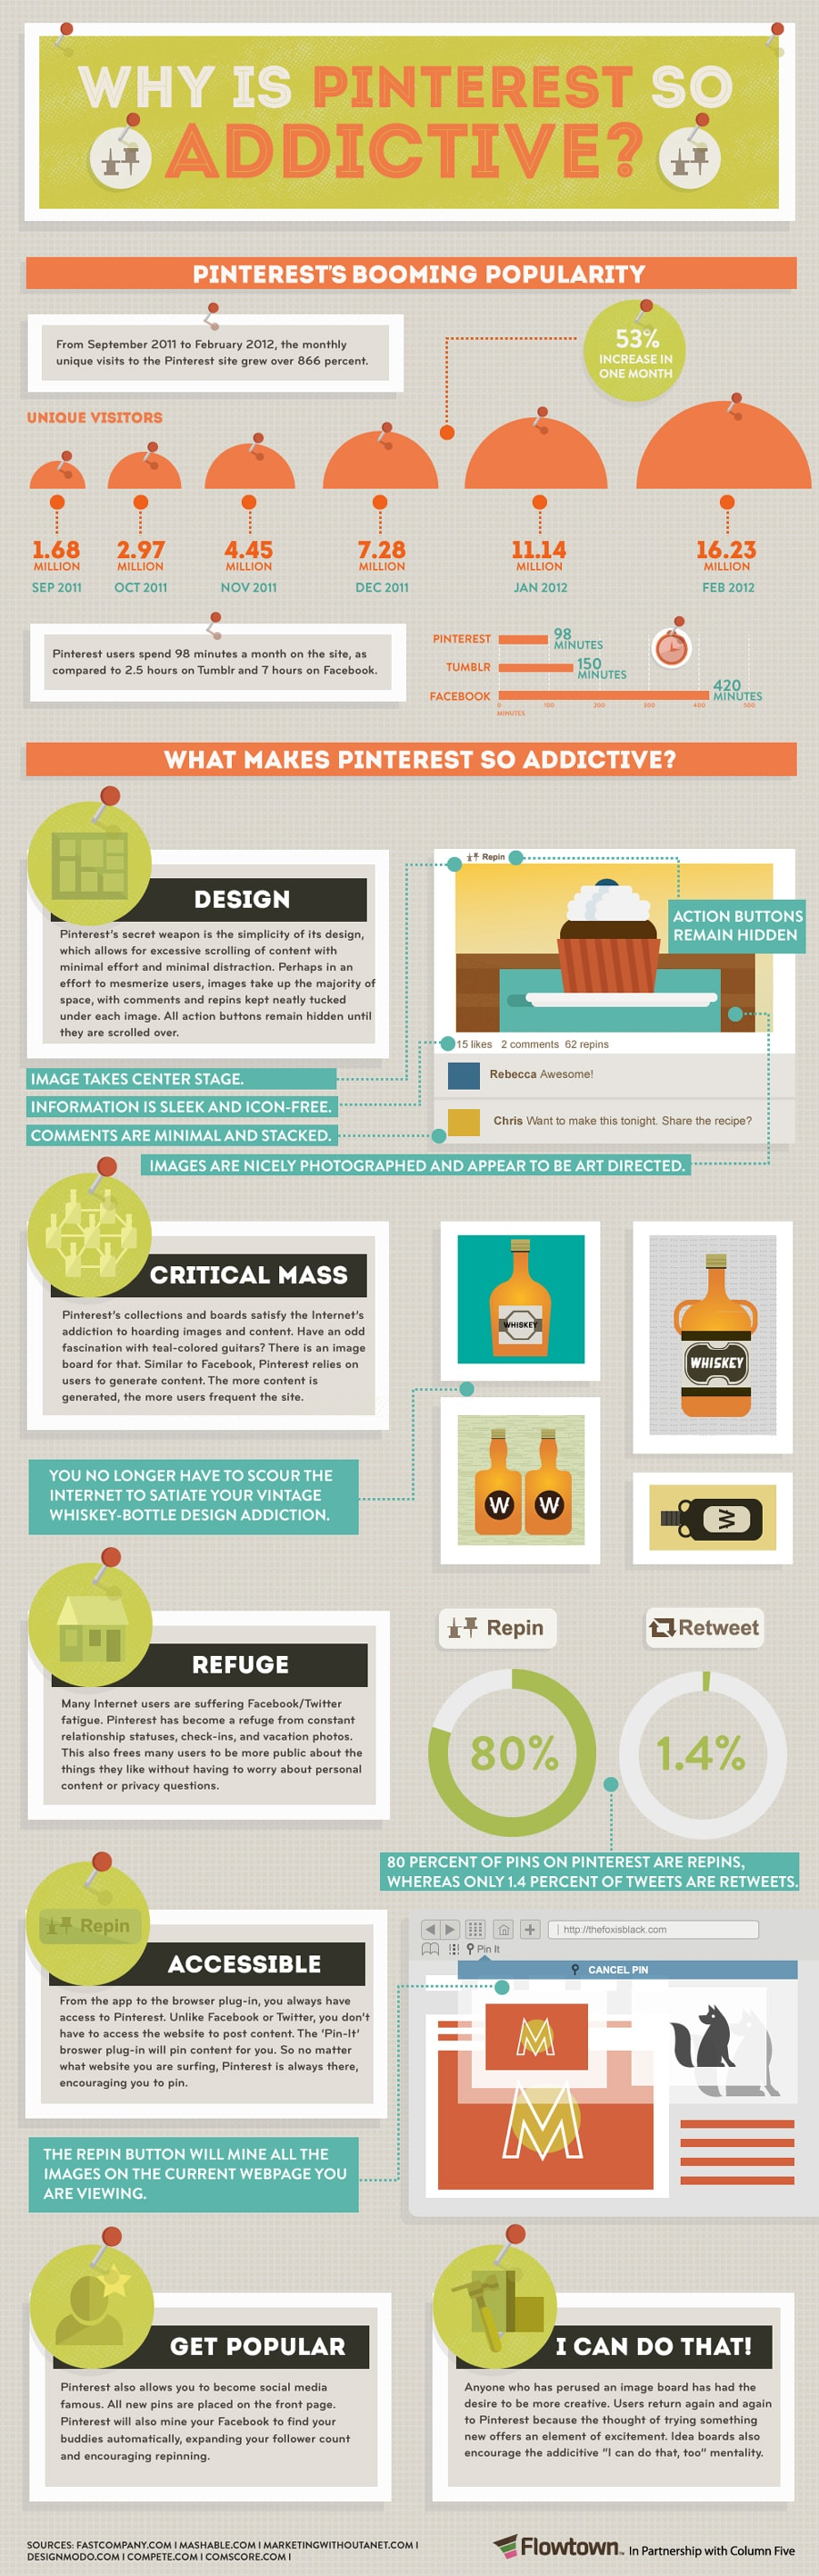 why-is-pinterest-addictive-infographic